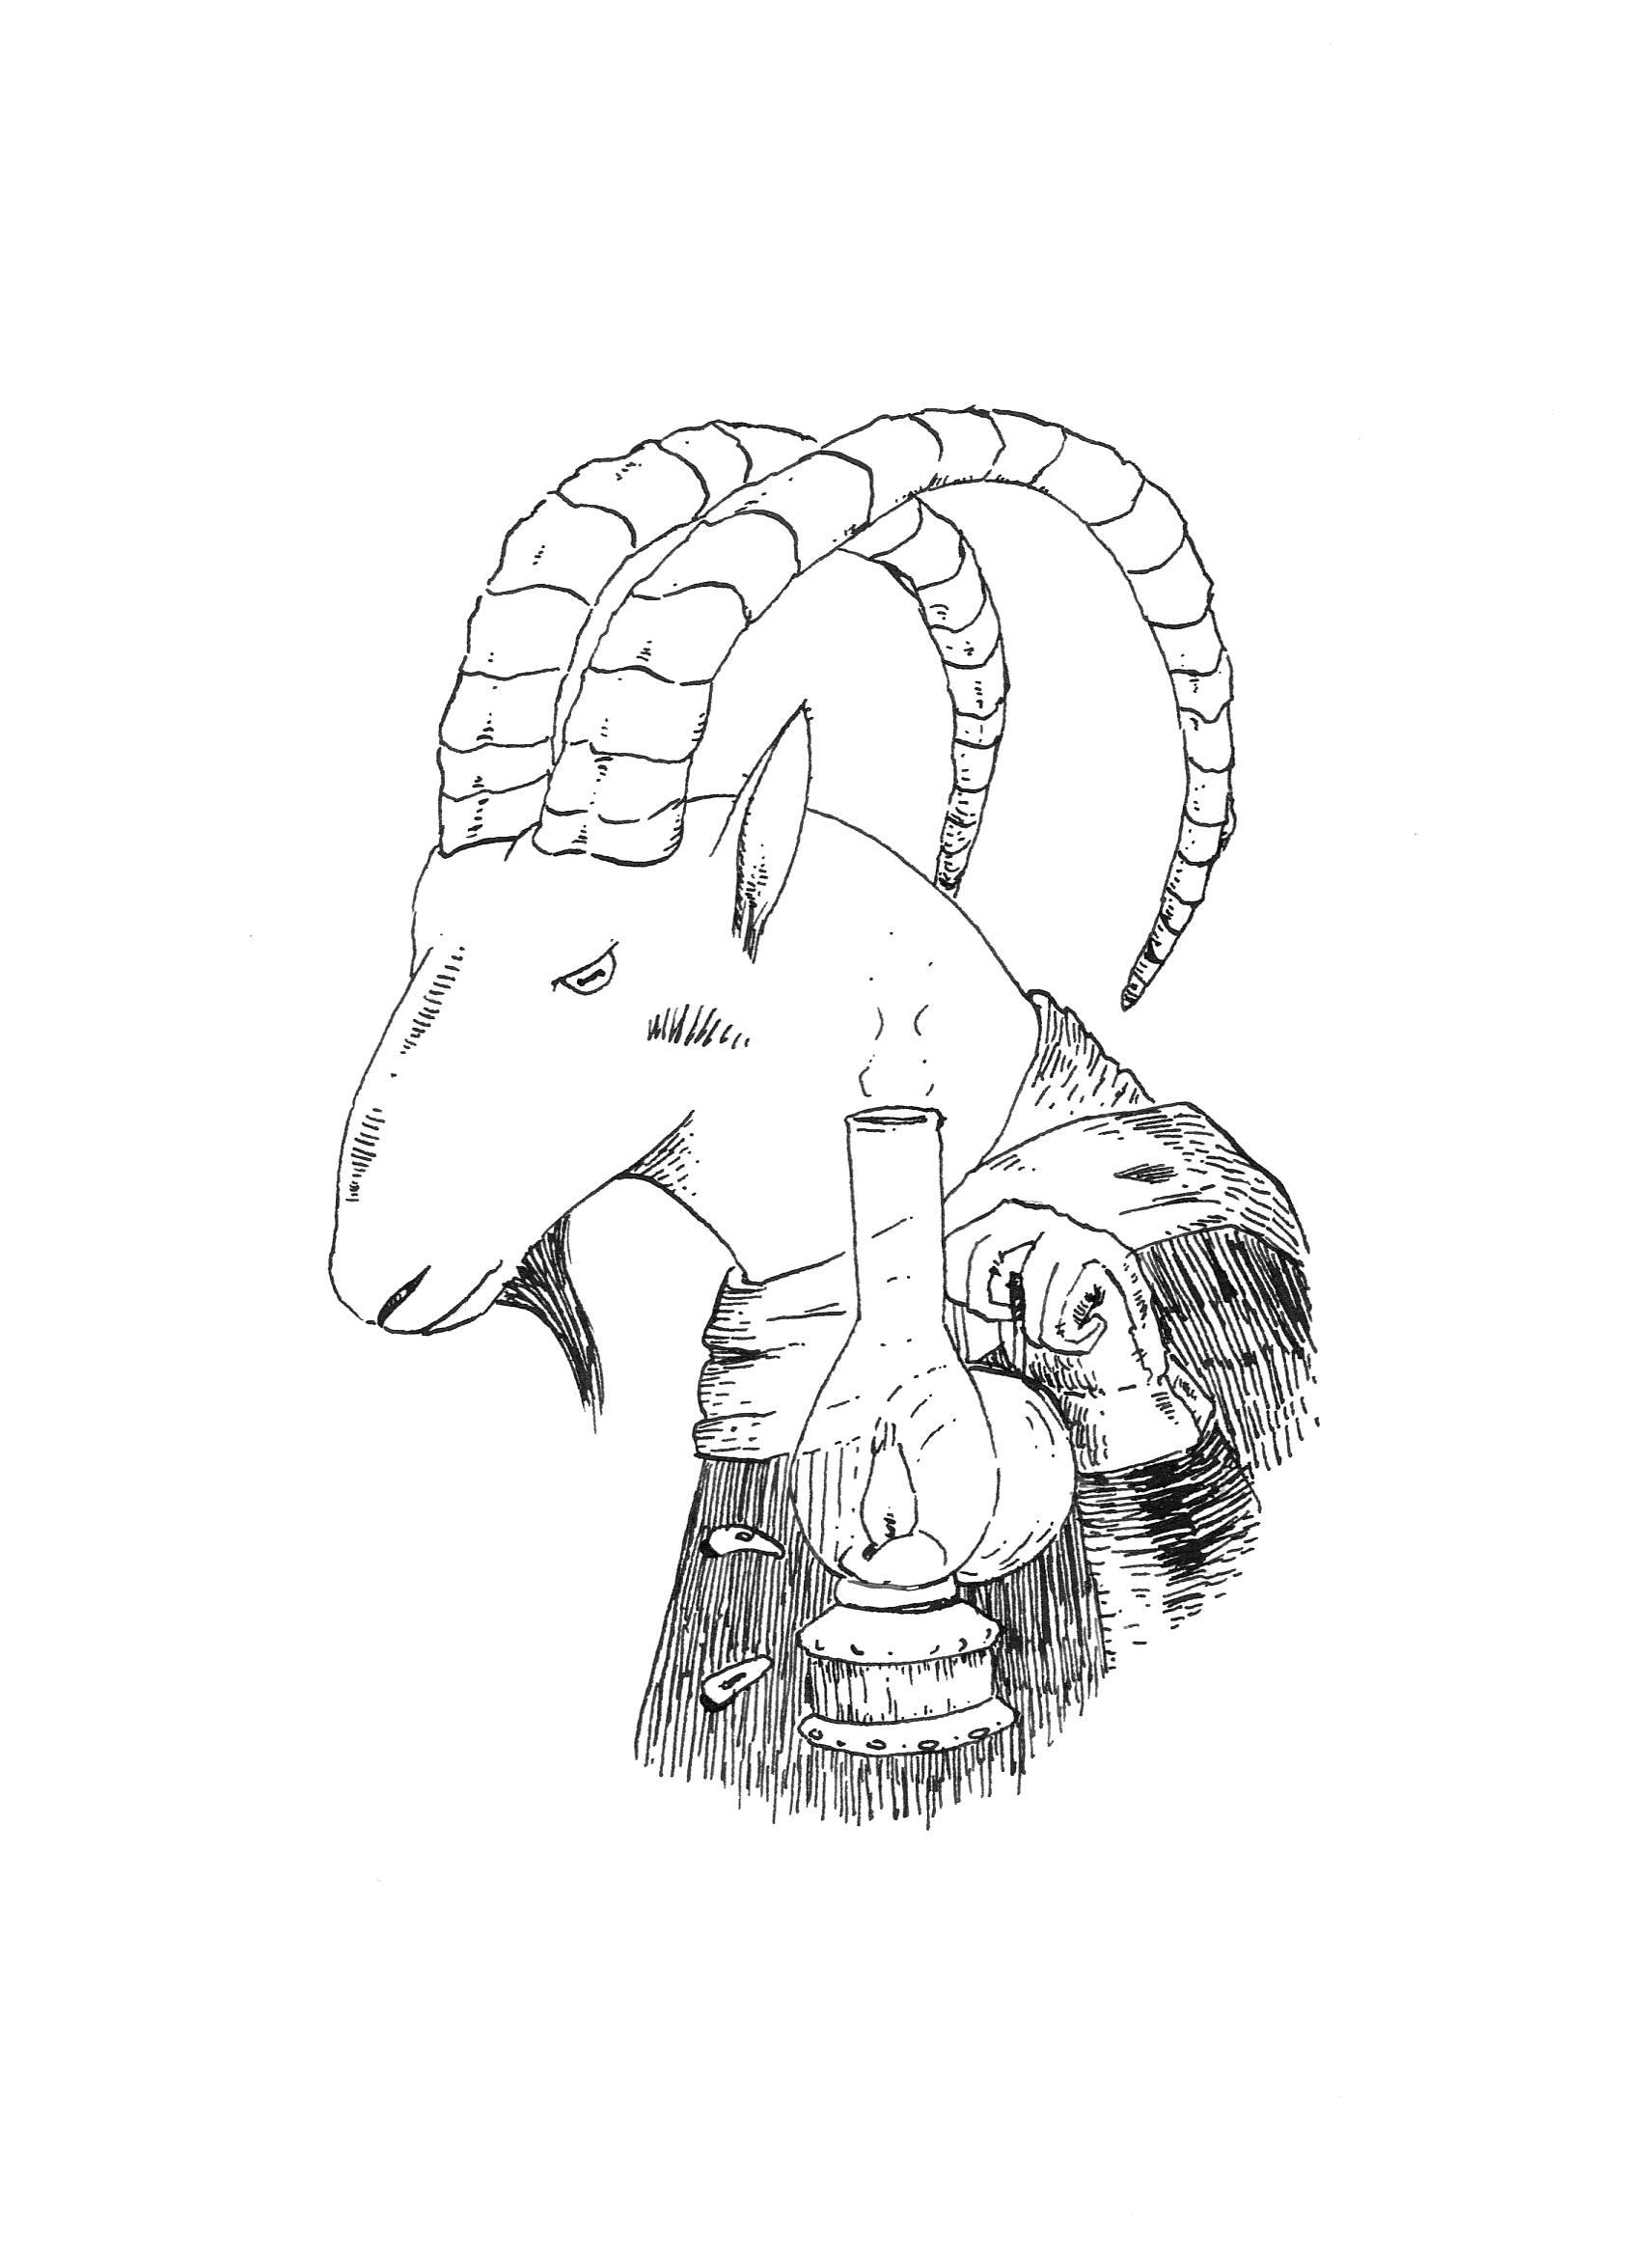 The Cretan Goat by pachryso